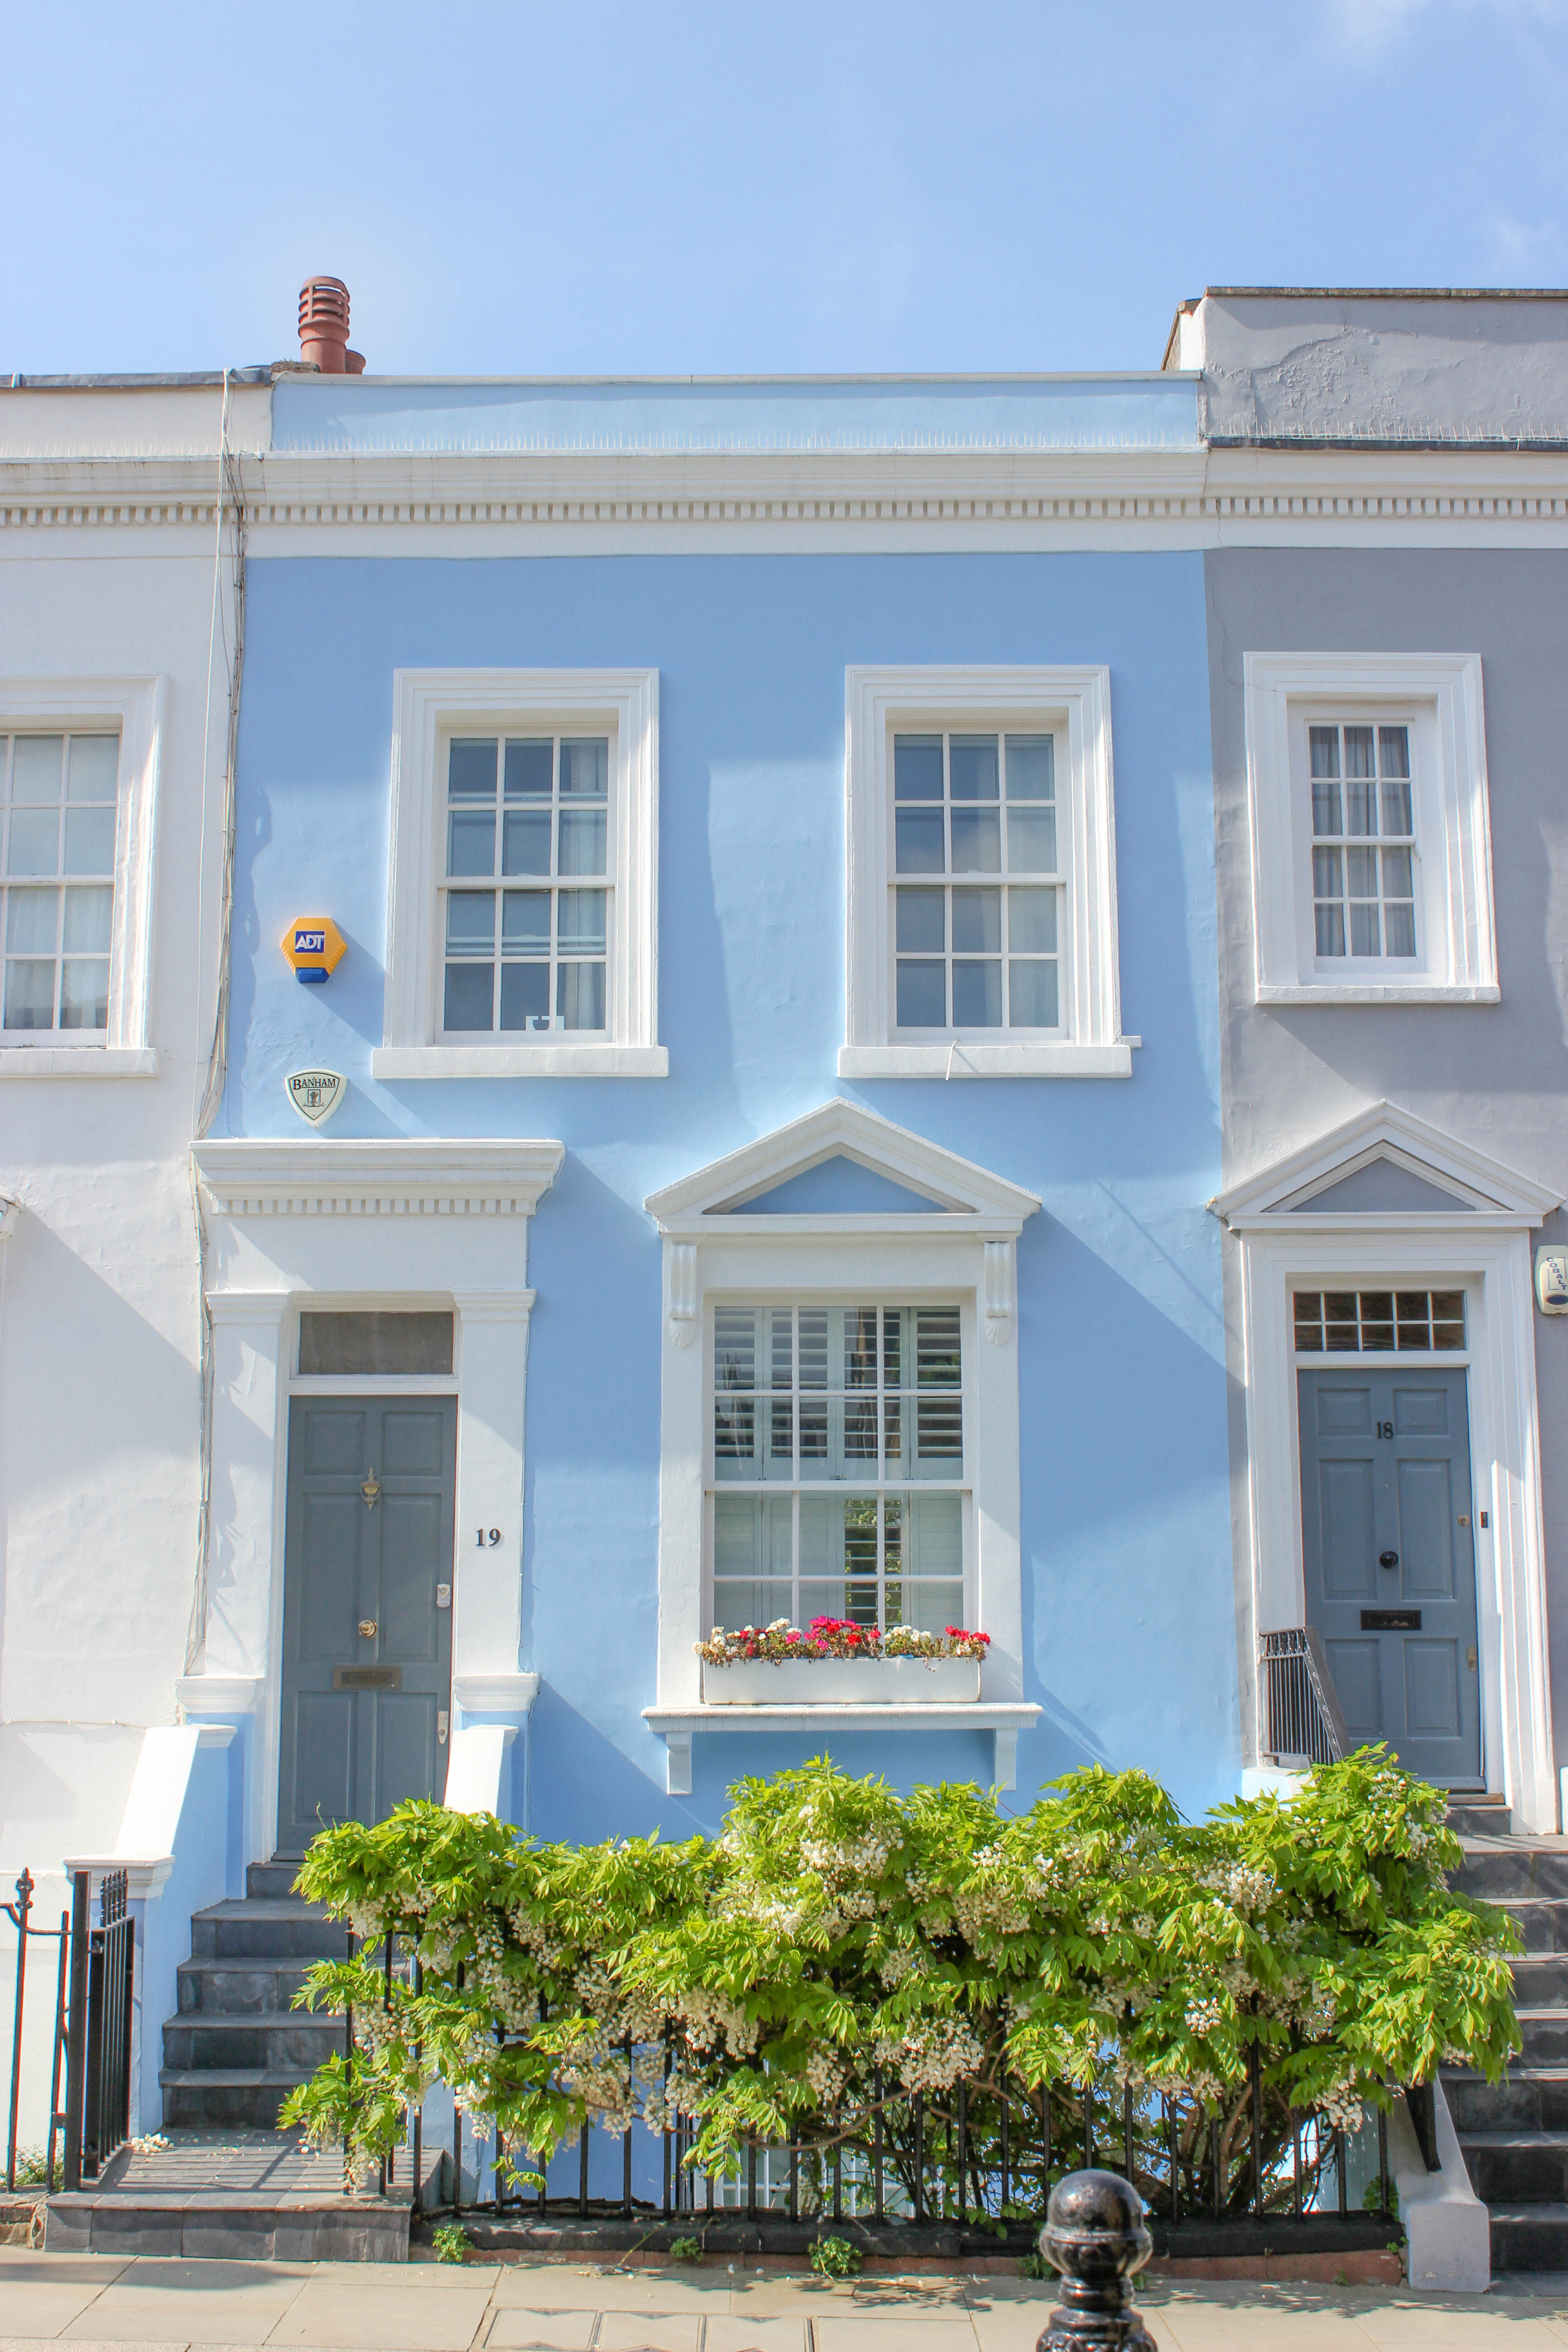 Notting Hill London: 8 Reasons Notting Hill Is London's Most Charming